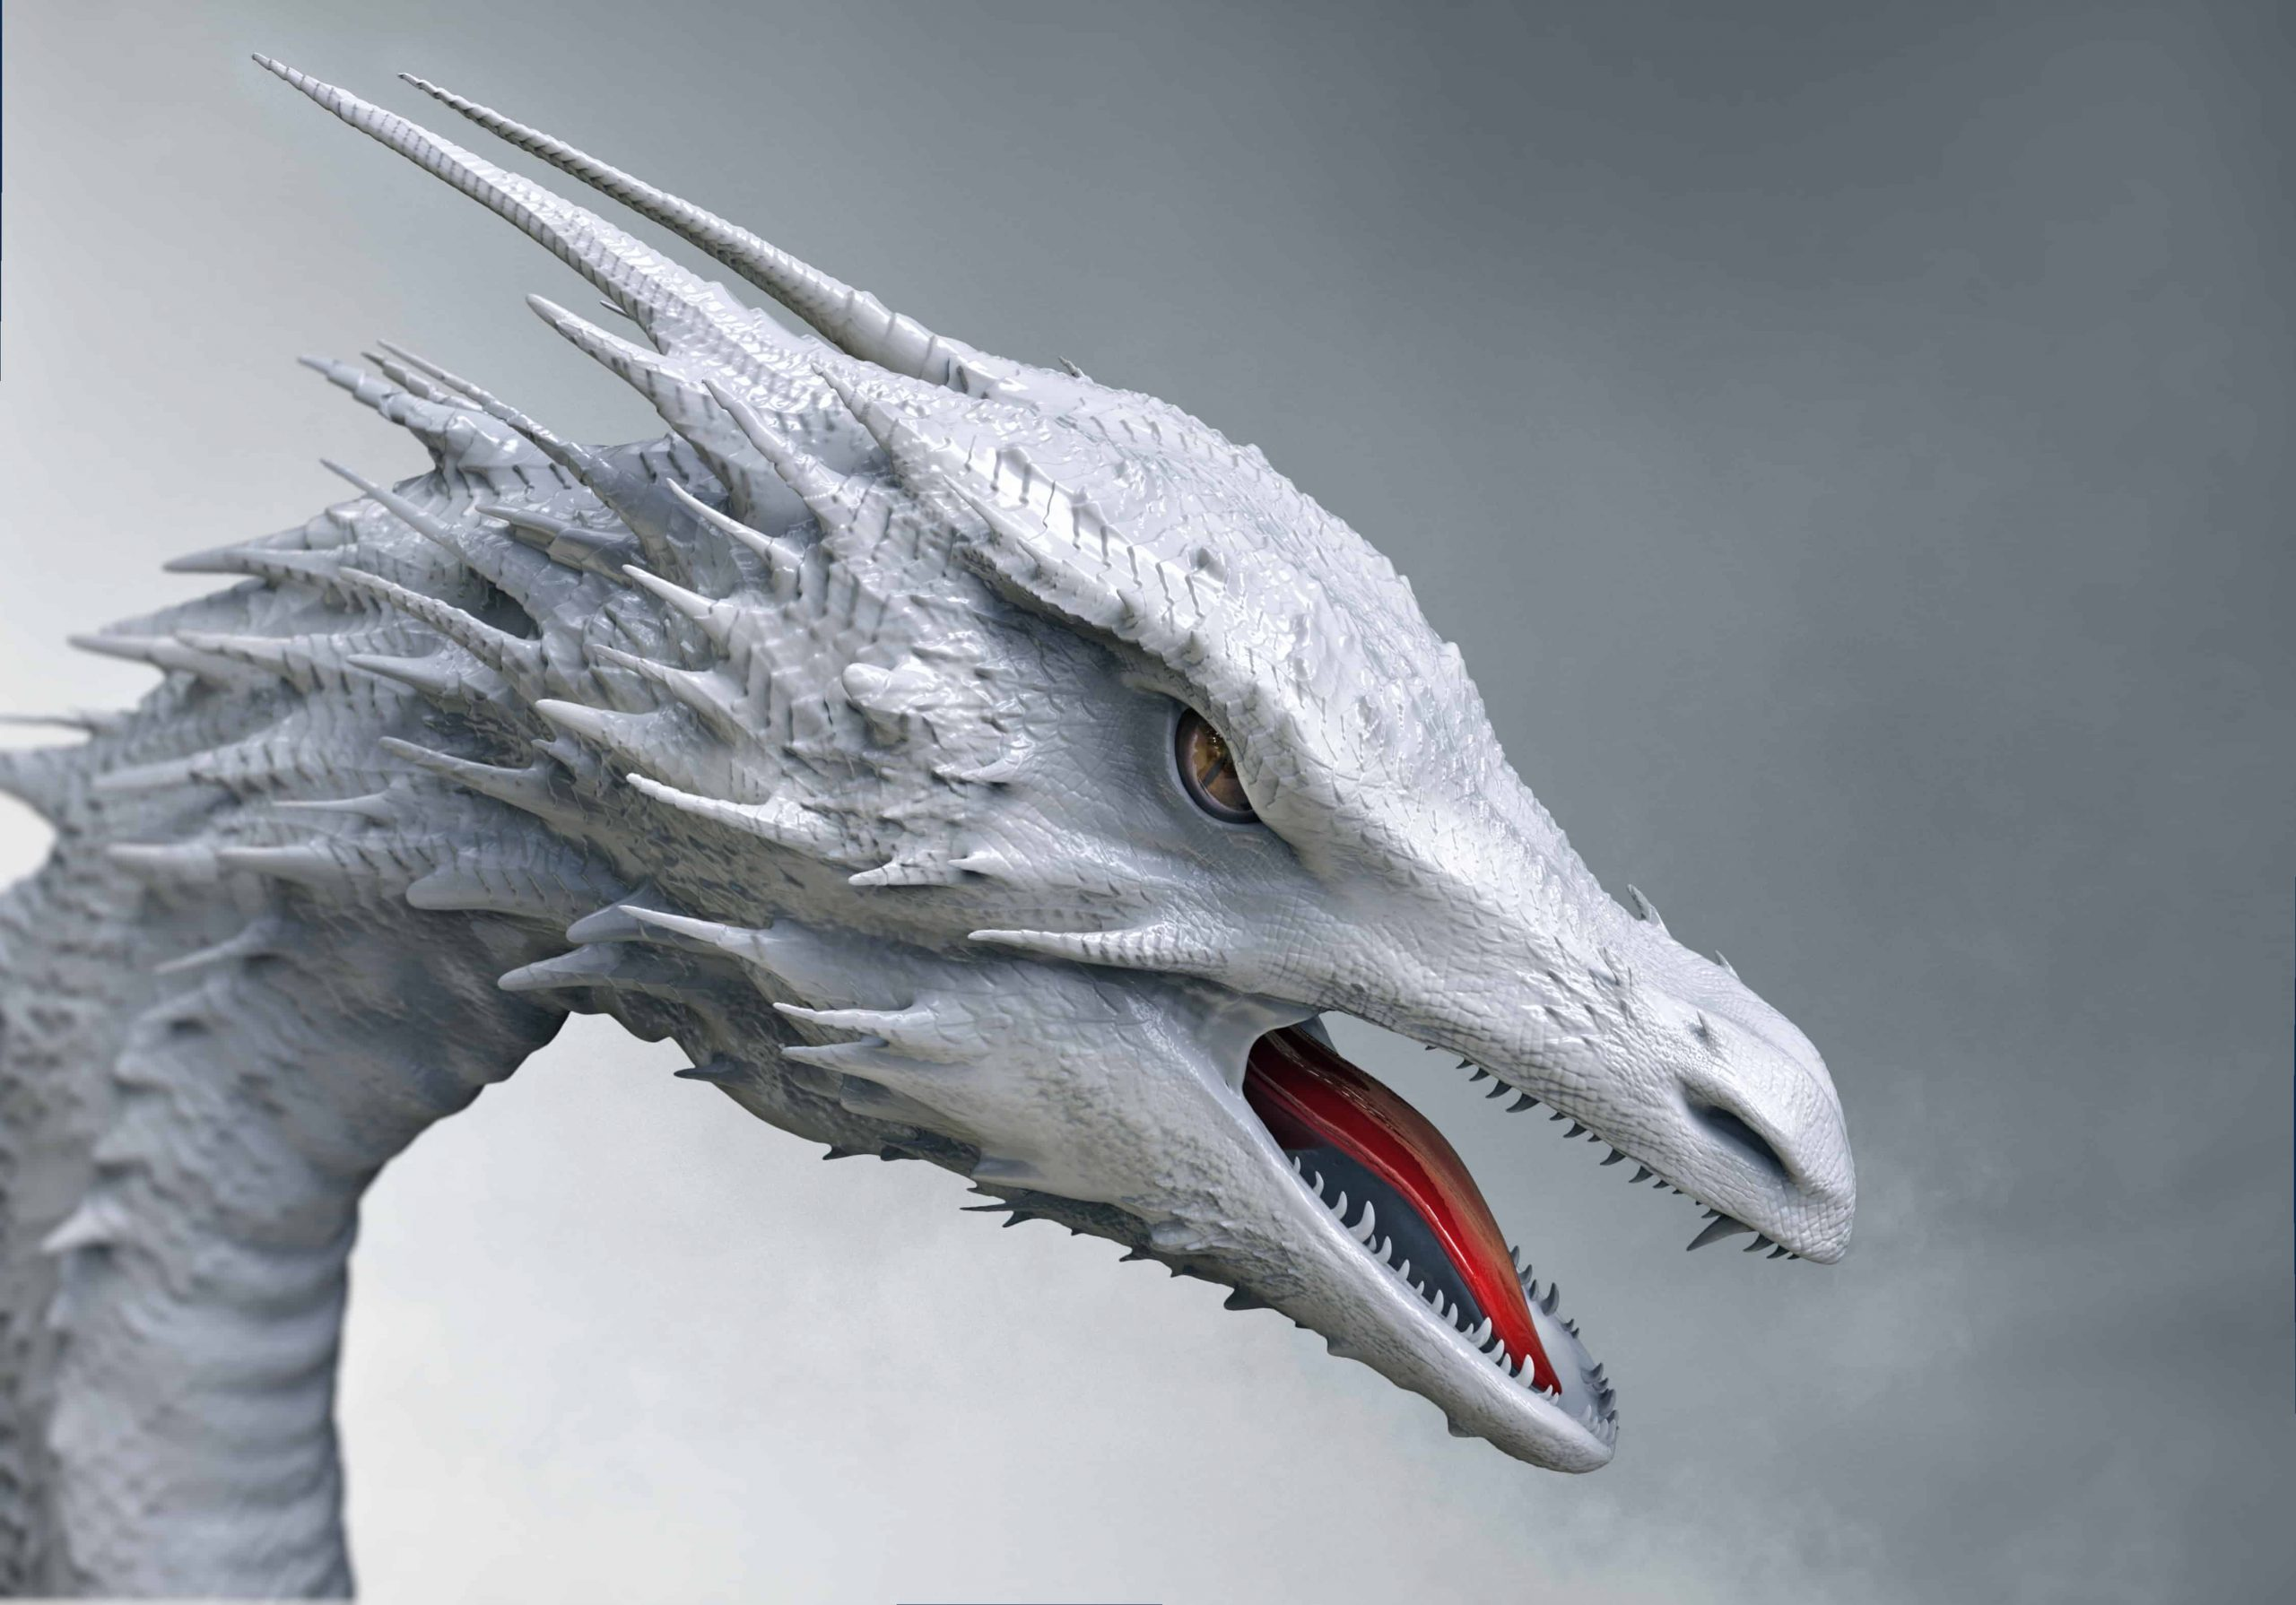 White dragon dream meaning